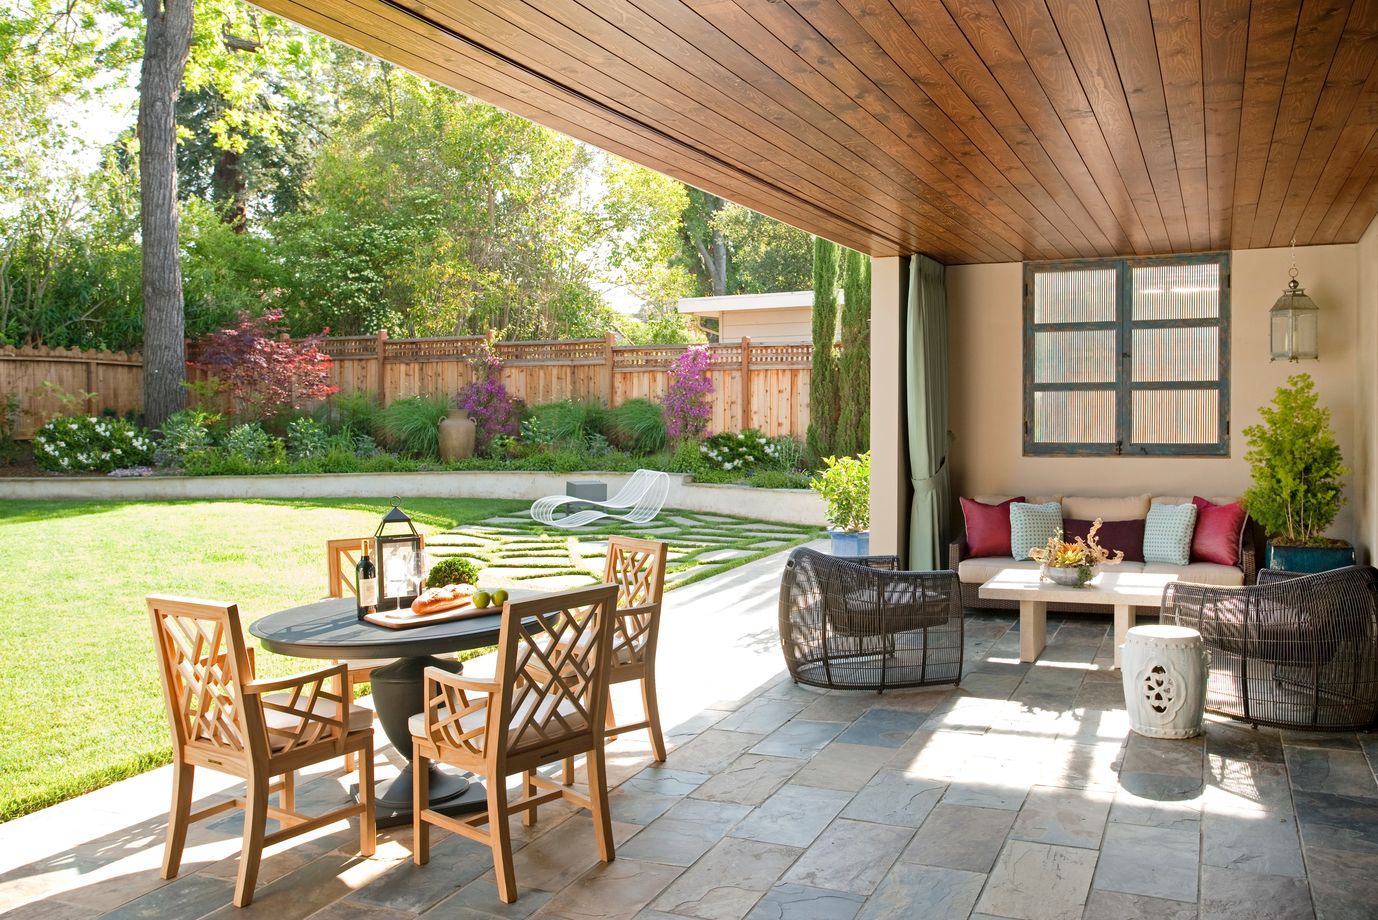 Outdoor living 8 ideas to get the most out of your space for Decorating outdoor spaces